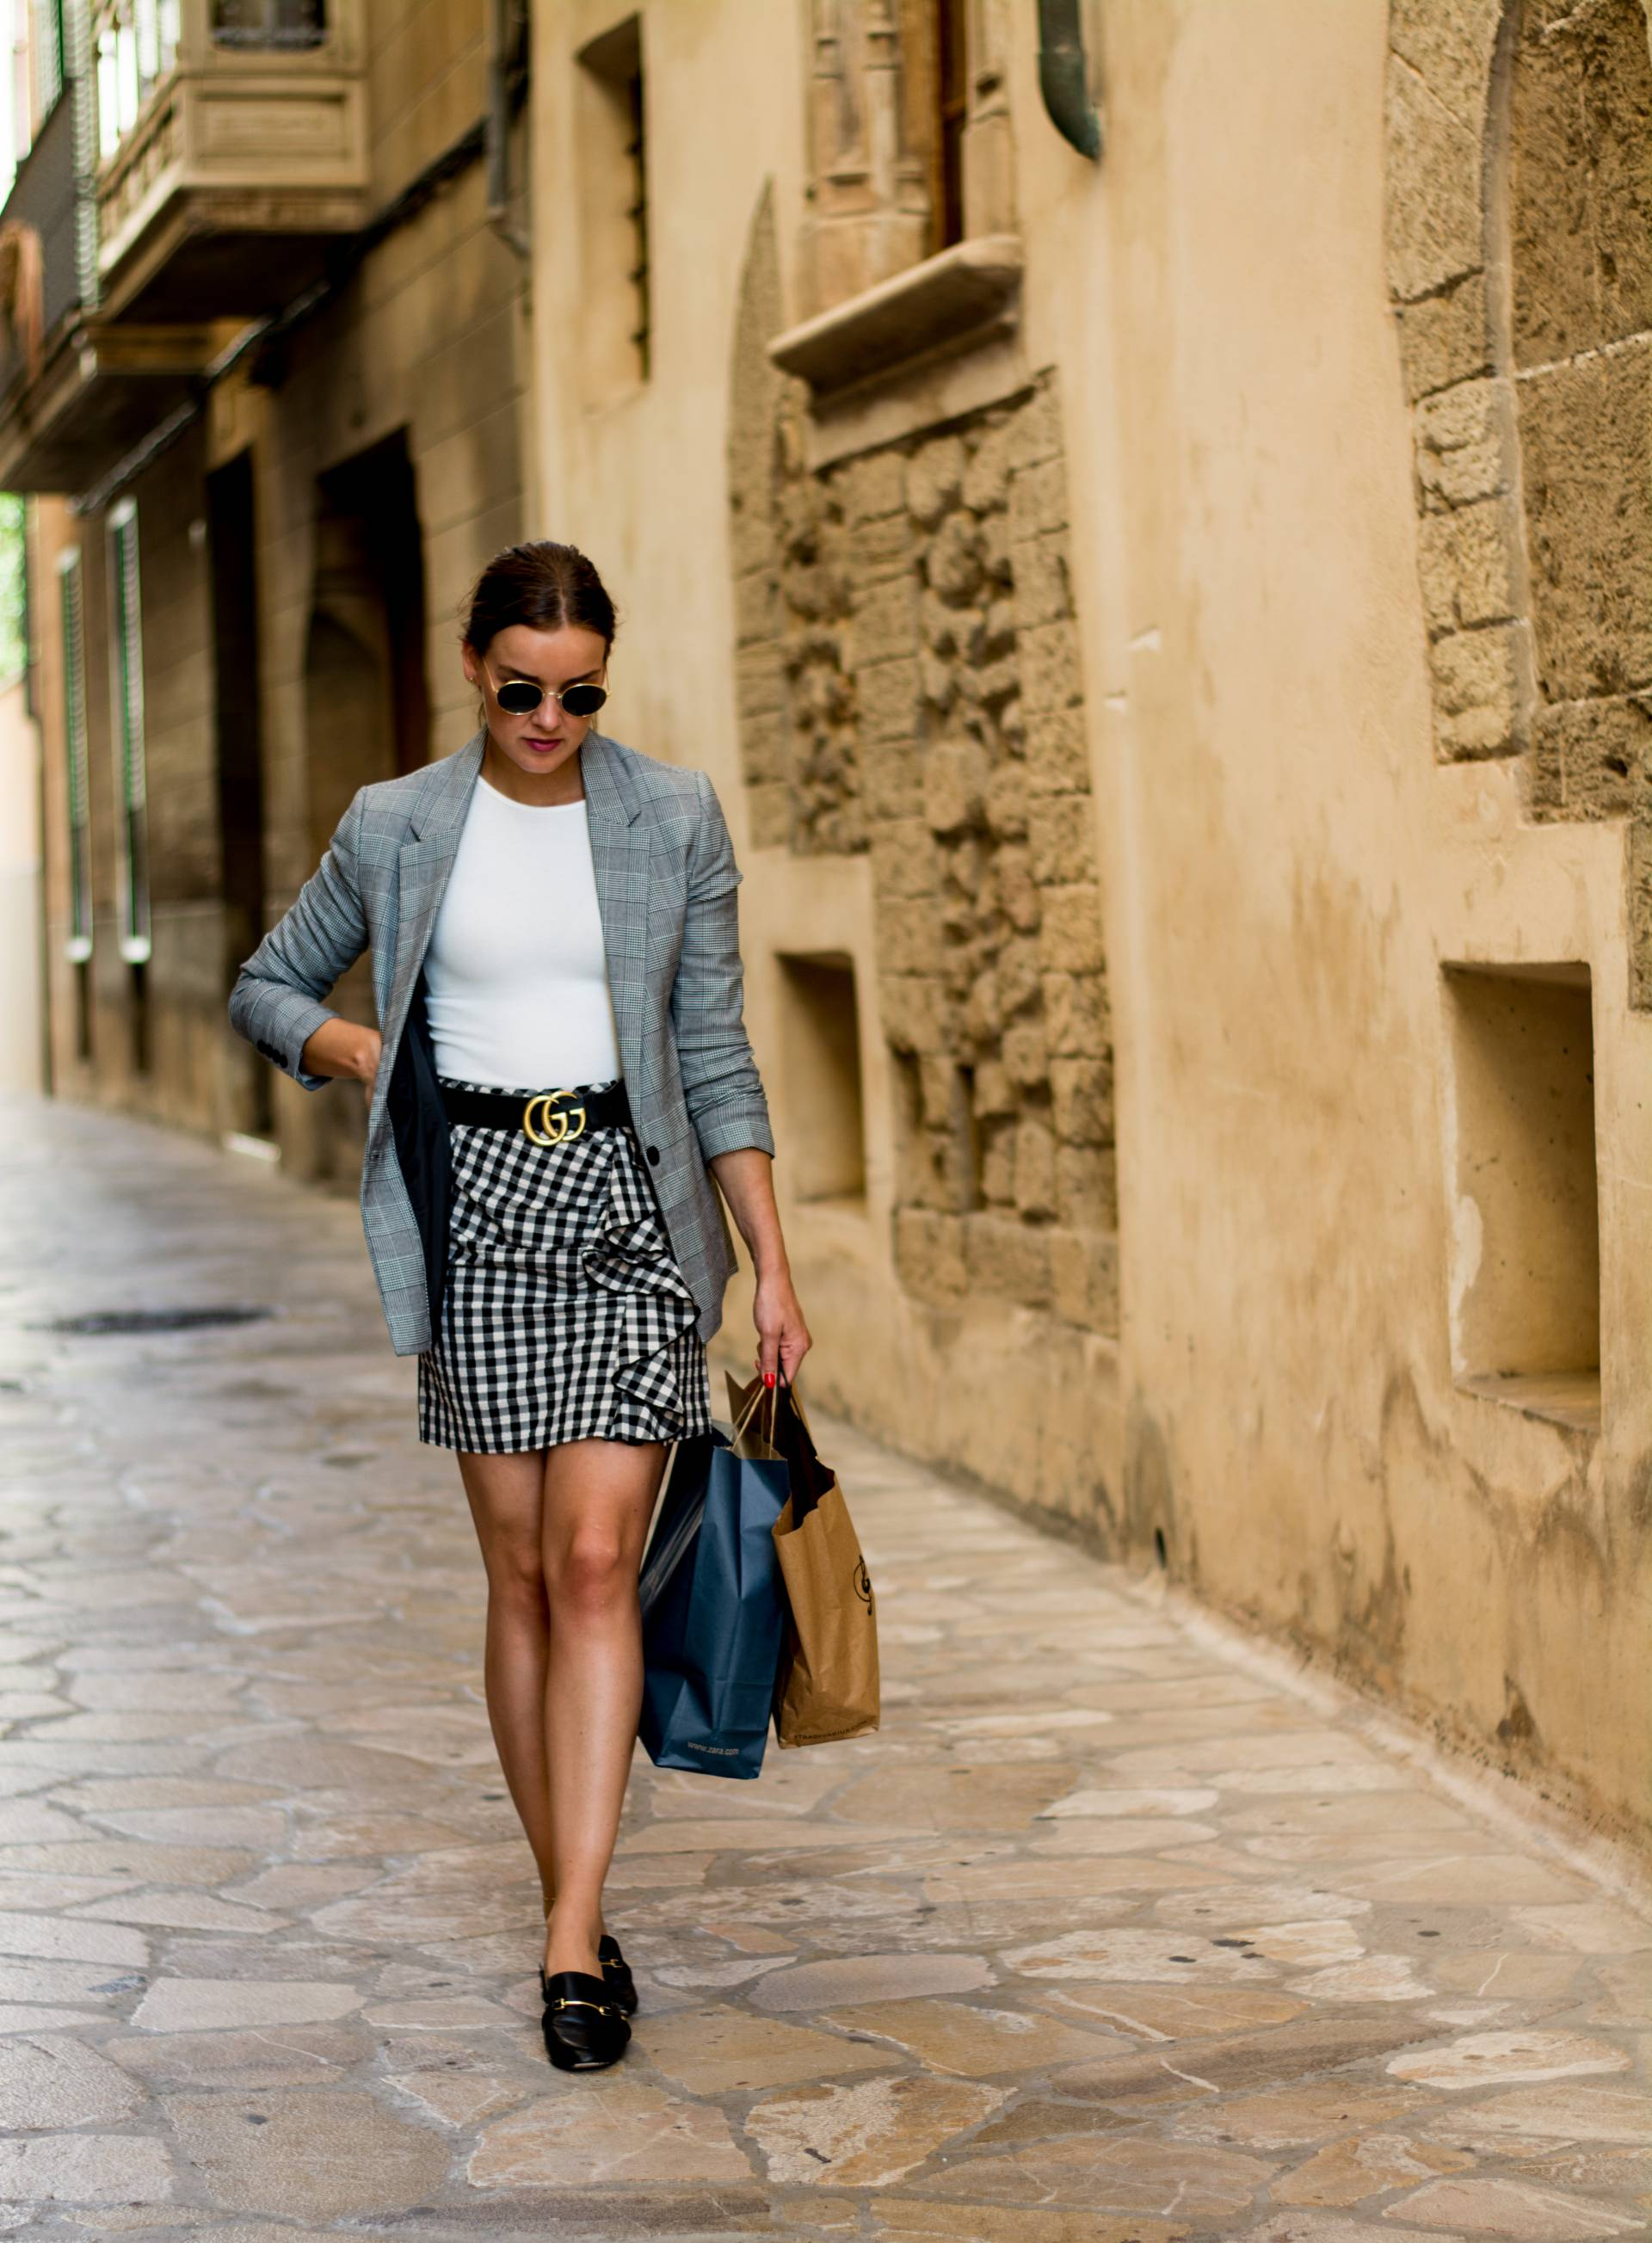 style-appetite-travel-palma-de-mallorca-outfit-city-tips